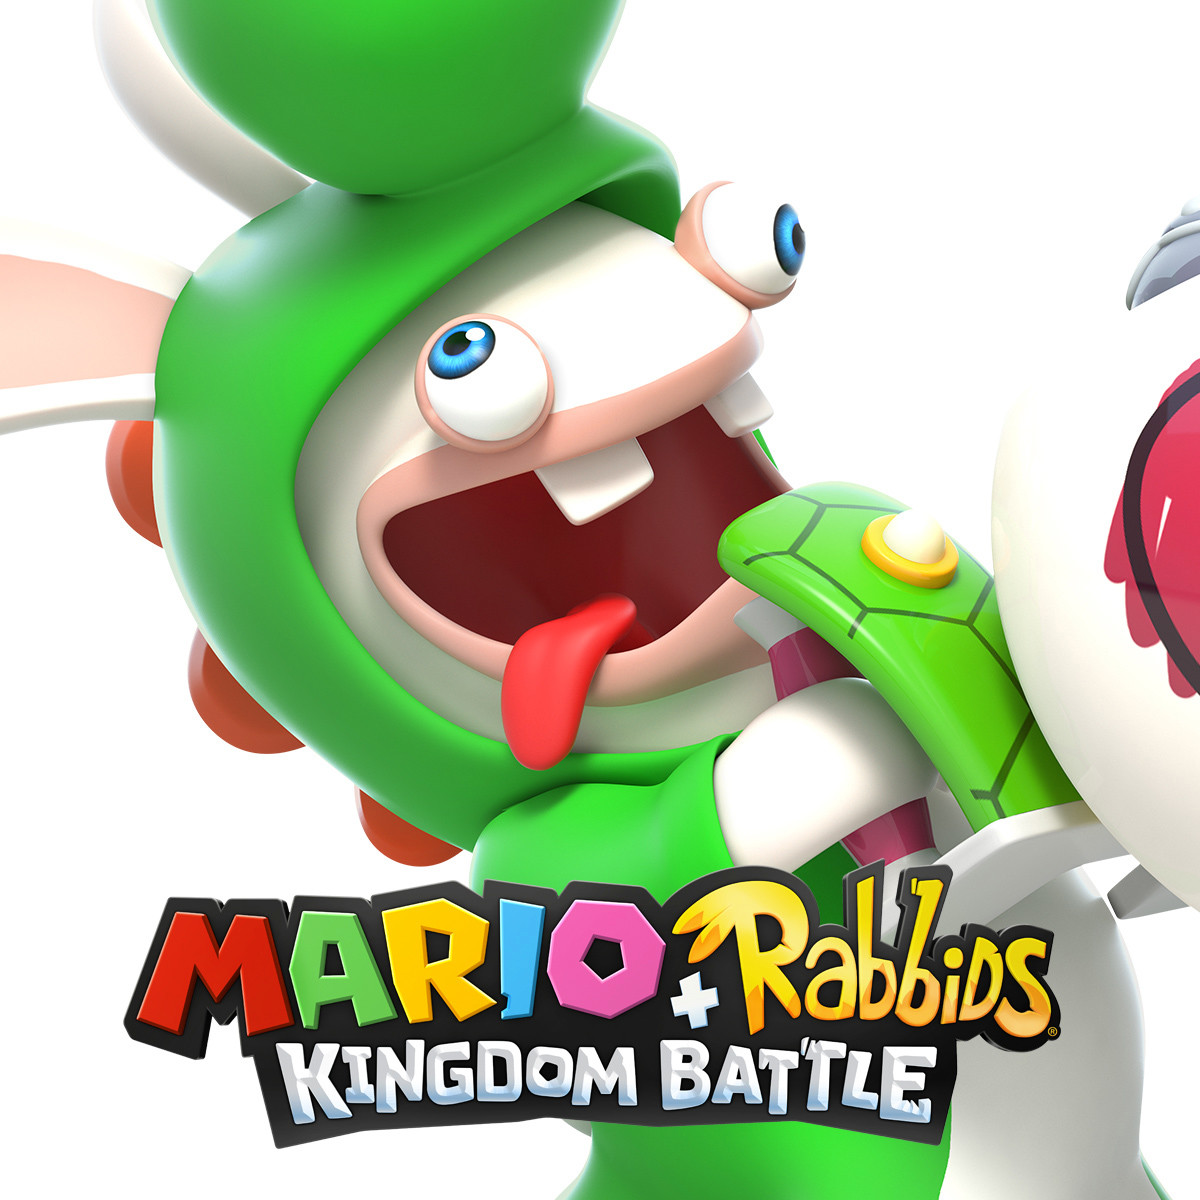 Mario+Rabbids Collectibles